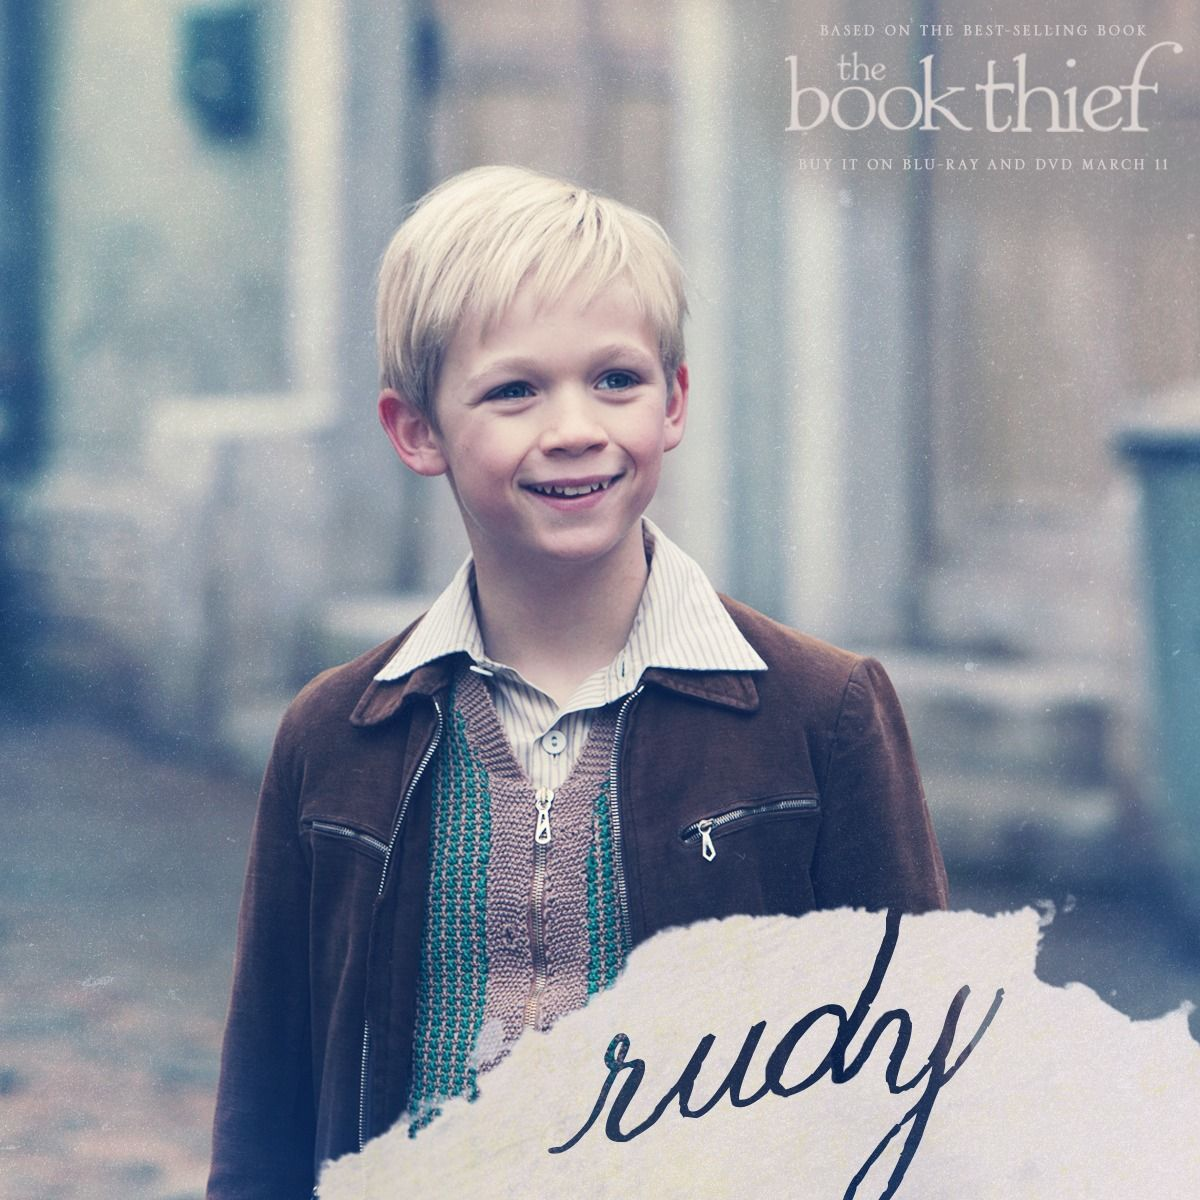 rudy steiner the book thief movies series actors rudy steiner the book thief